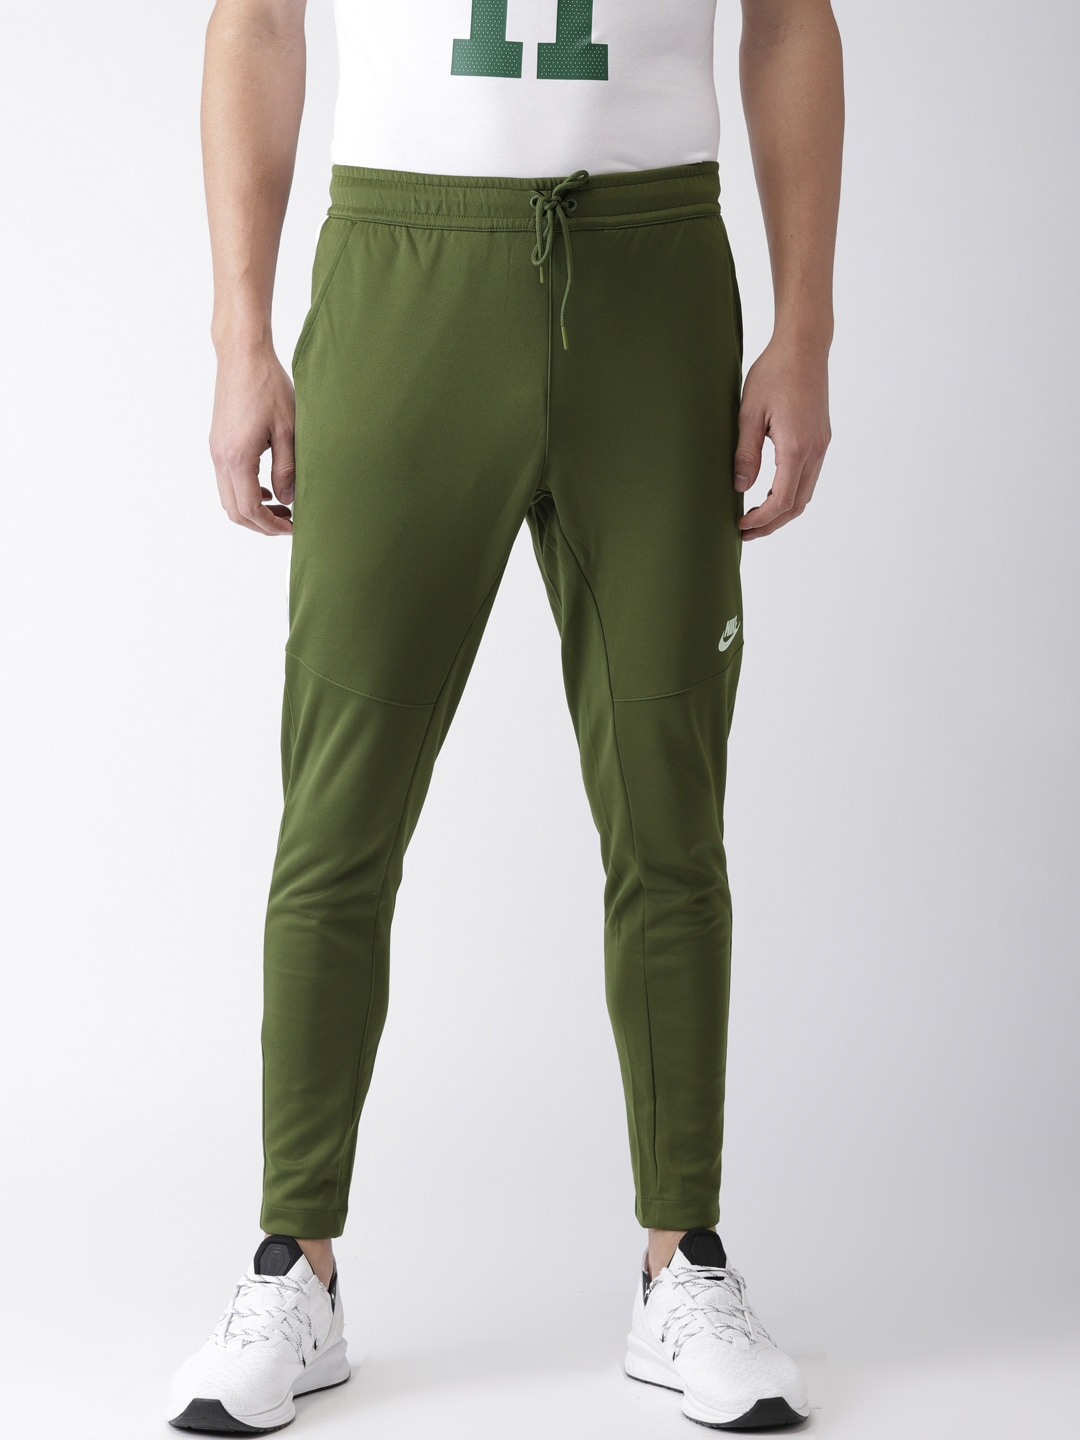 d947ef4e9262 Nike Overplay Iv Track Pants Pants Jackets - Buy Nike Overplay Iv Track Pants  Pants Jackets online in India